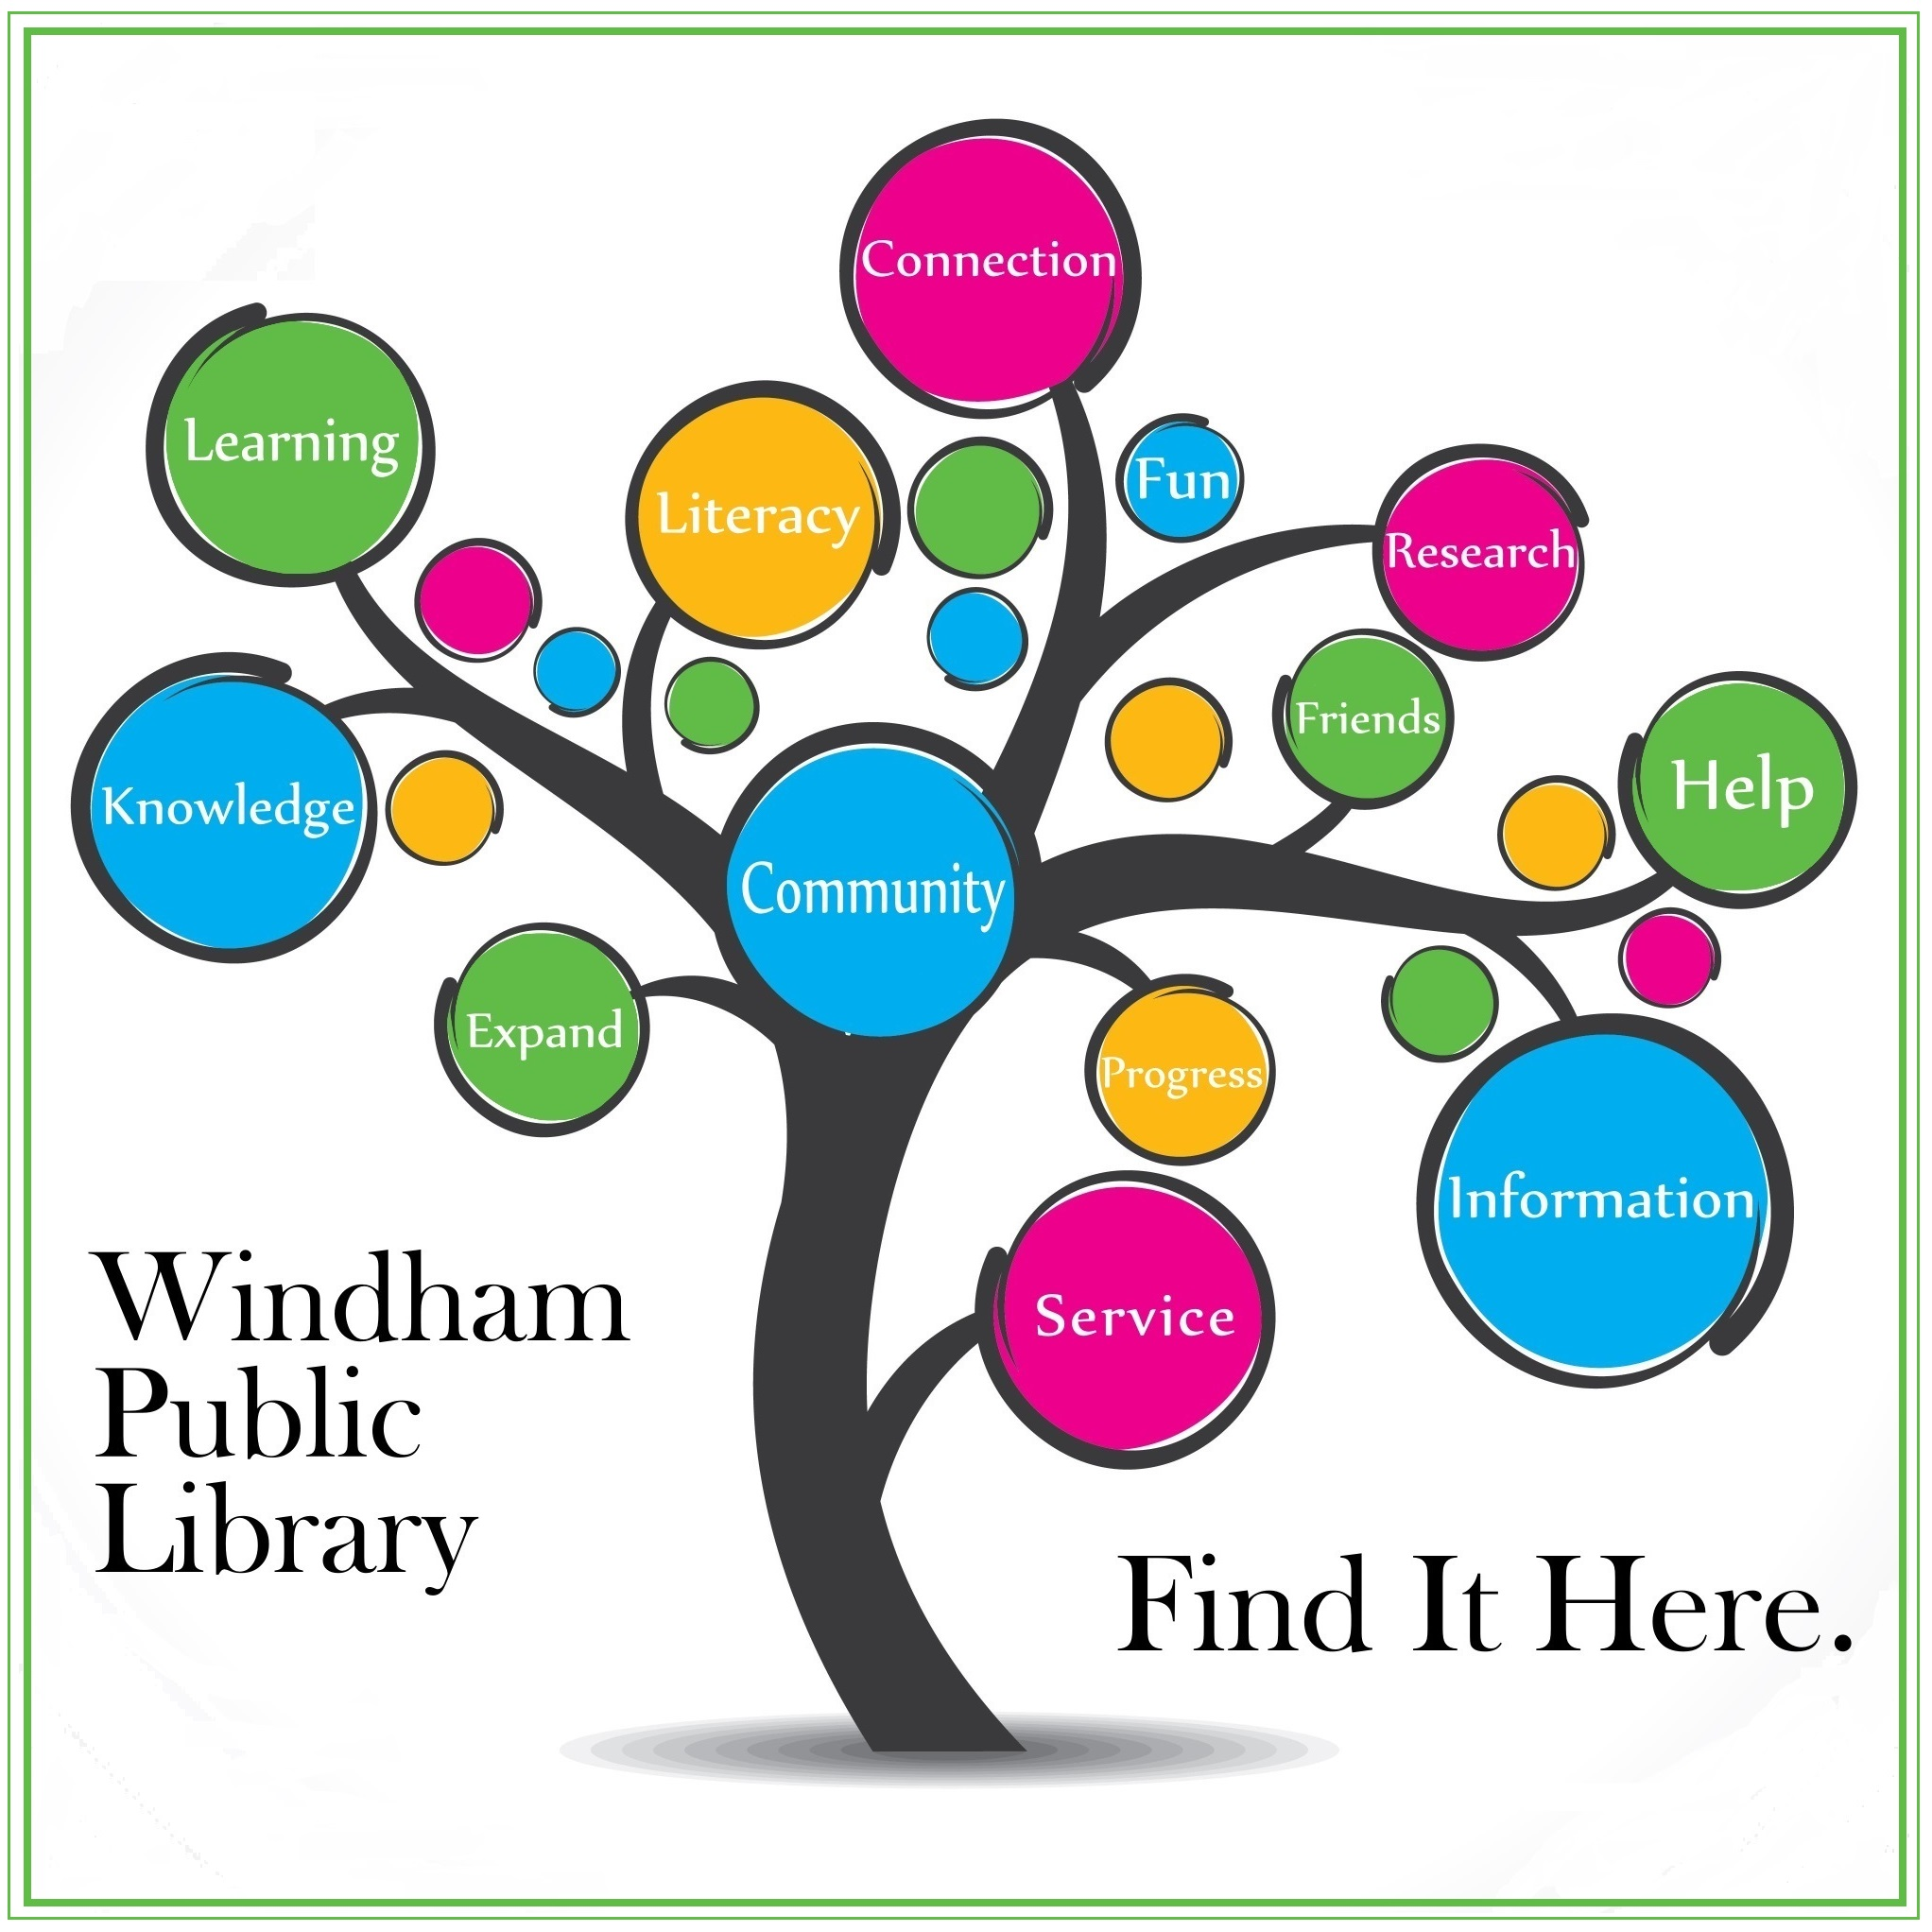 Windham Public Library logo